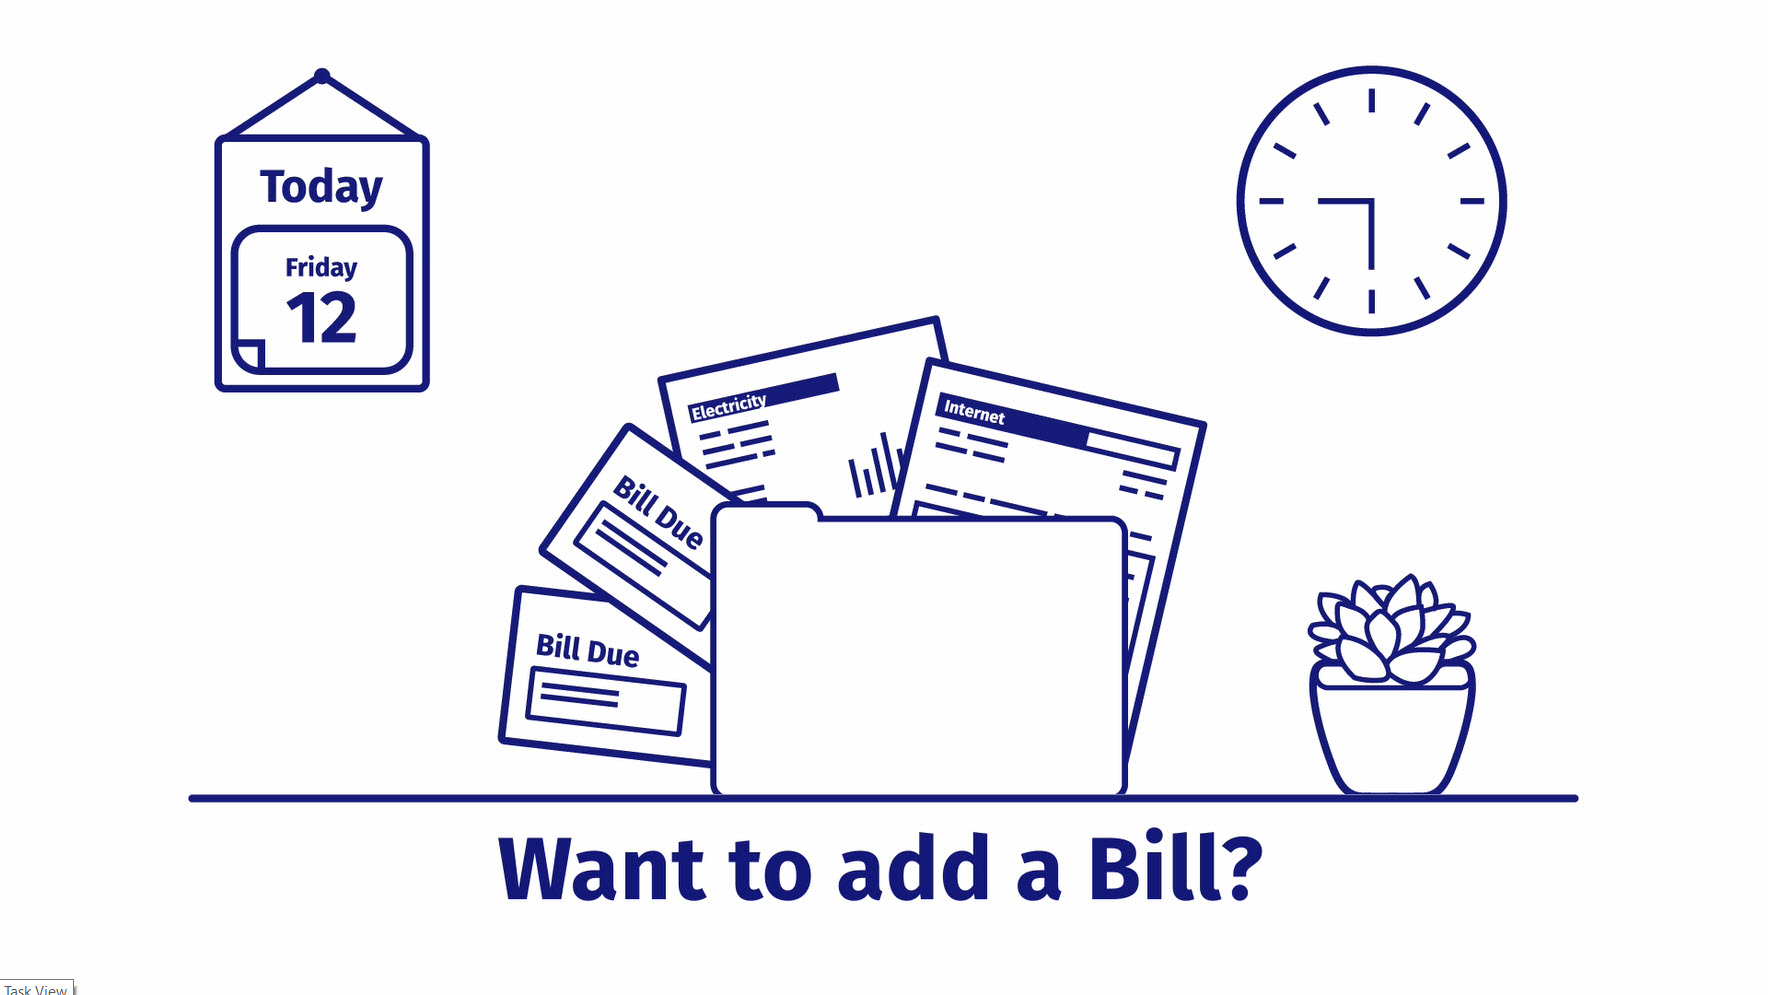 Add a Bill Animation